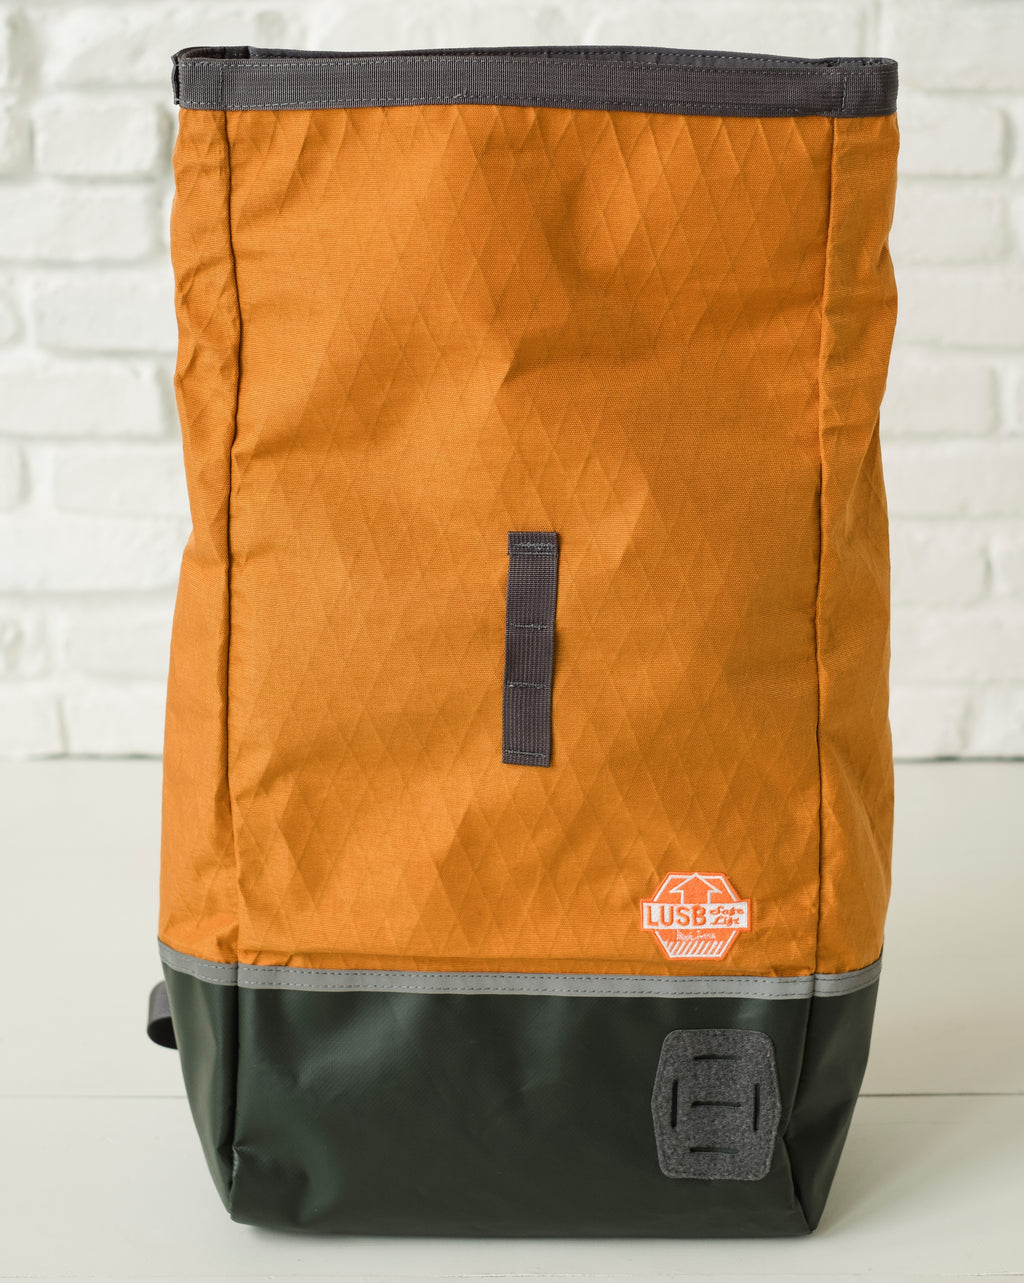 LUSB132HV Limited Edition Roll Top Back Pack in Harvest Front View